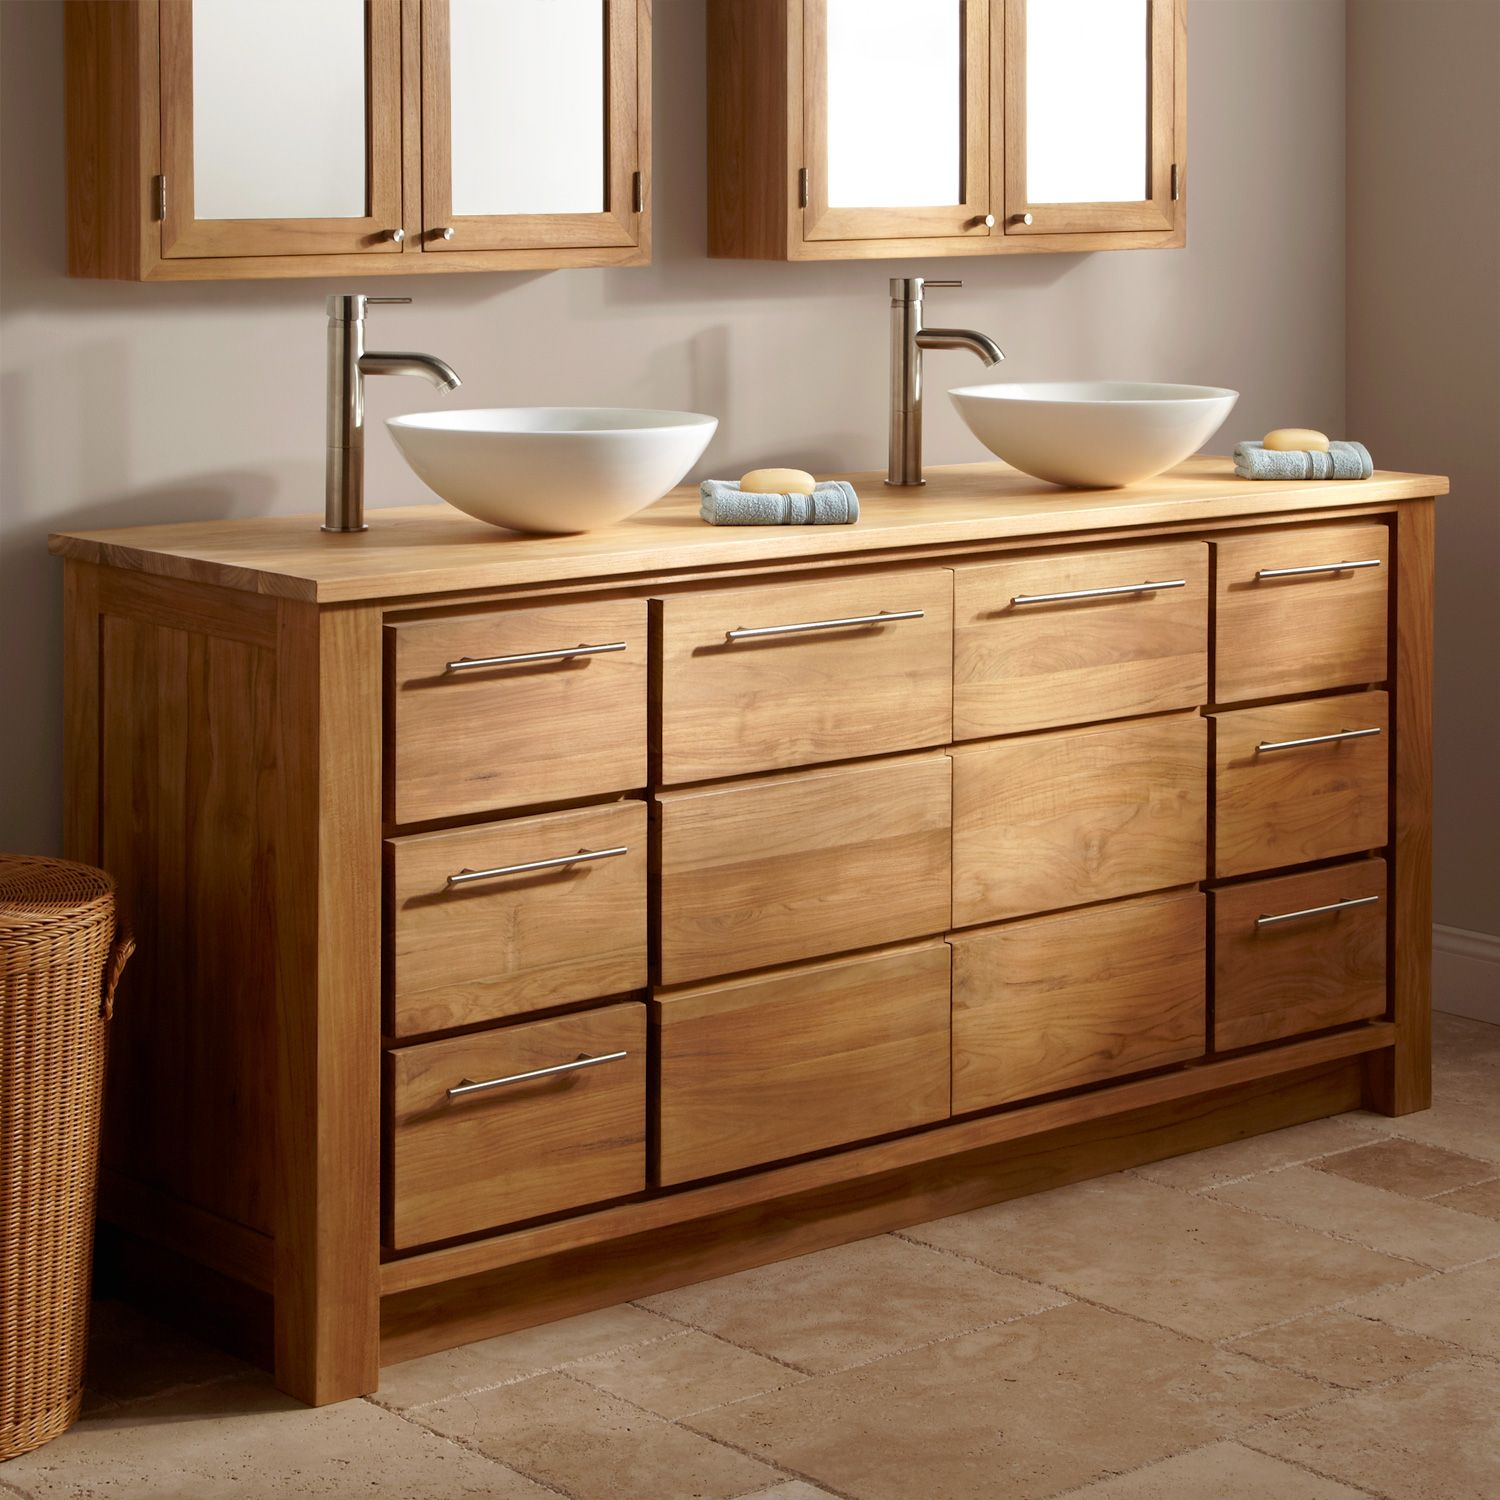 Venica Teak Double Vanity Cabinet With Teak Top For Vessel - Bathroom sinks and vanities for small spaces